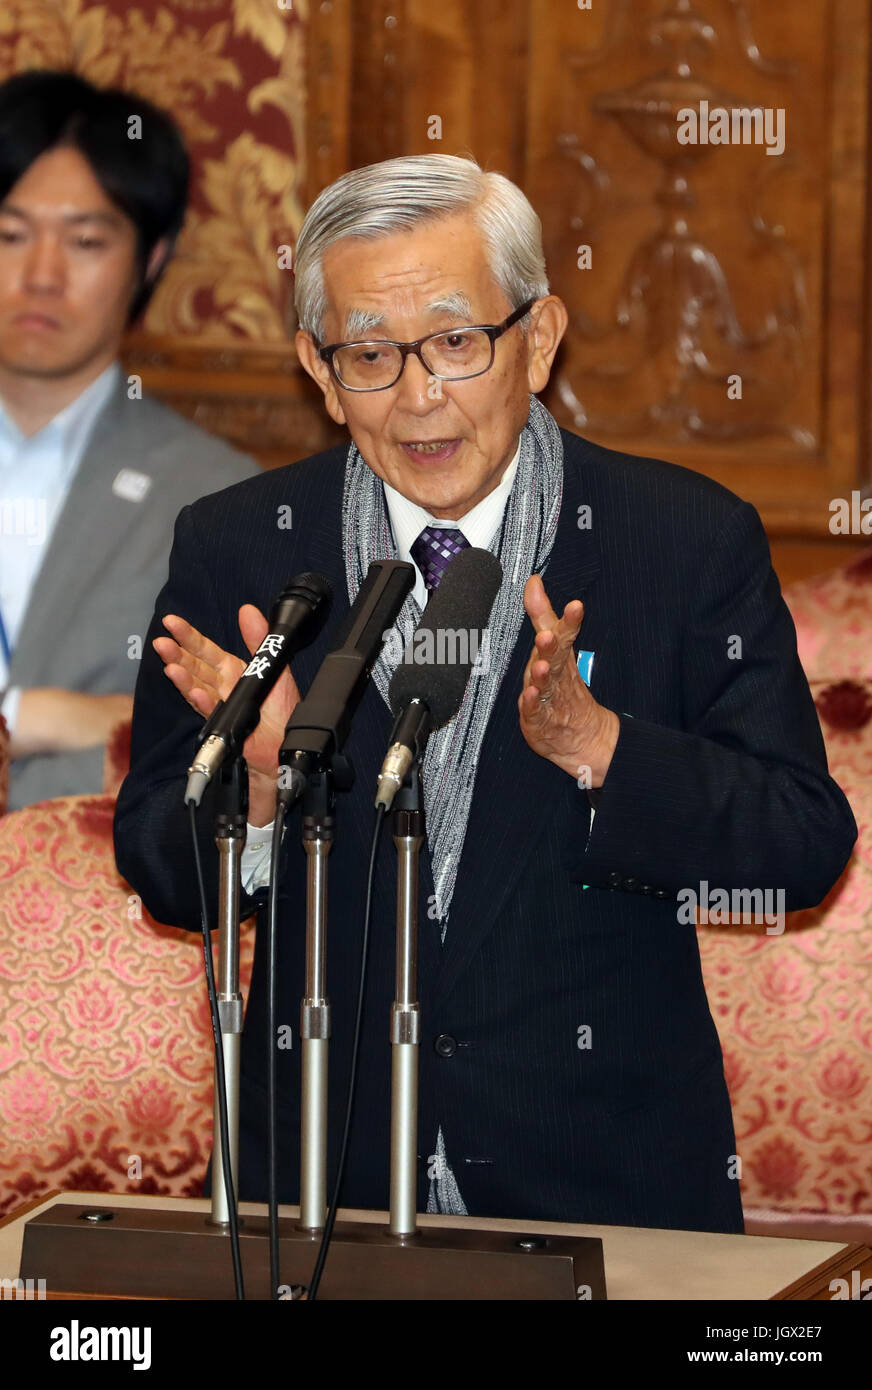 Tokyo, Japan. 10th July, 2017. Former Ehime prefecture Governor Moriyuki Kato speaks at the Upper House's committee - Stock Image